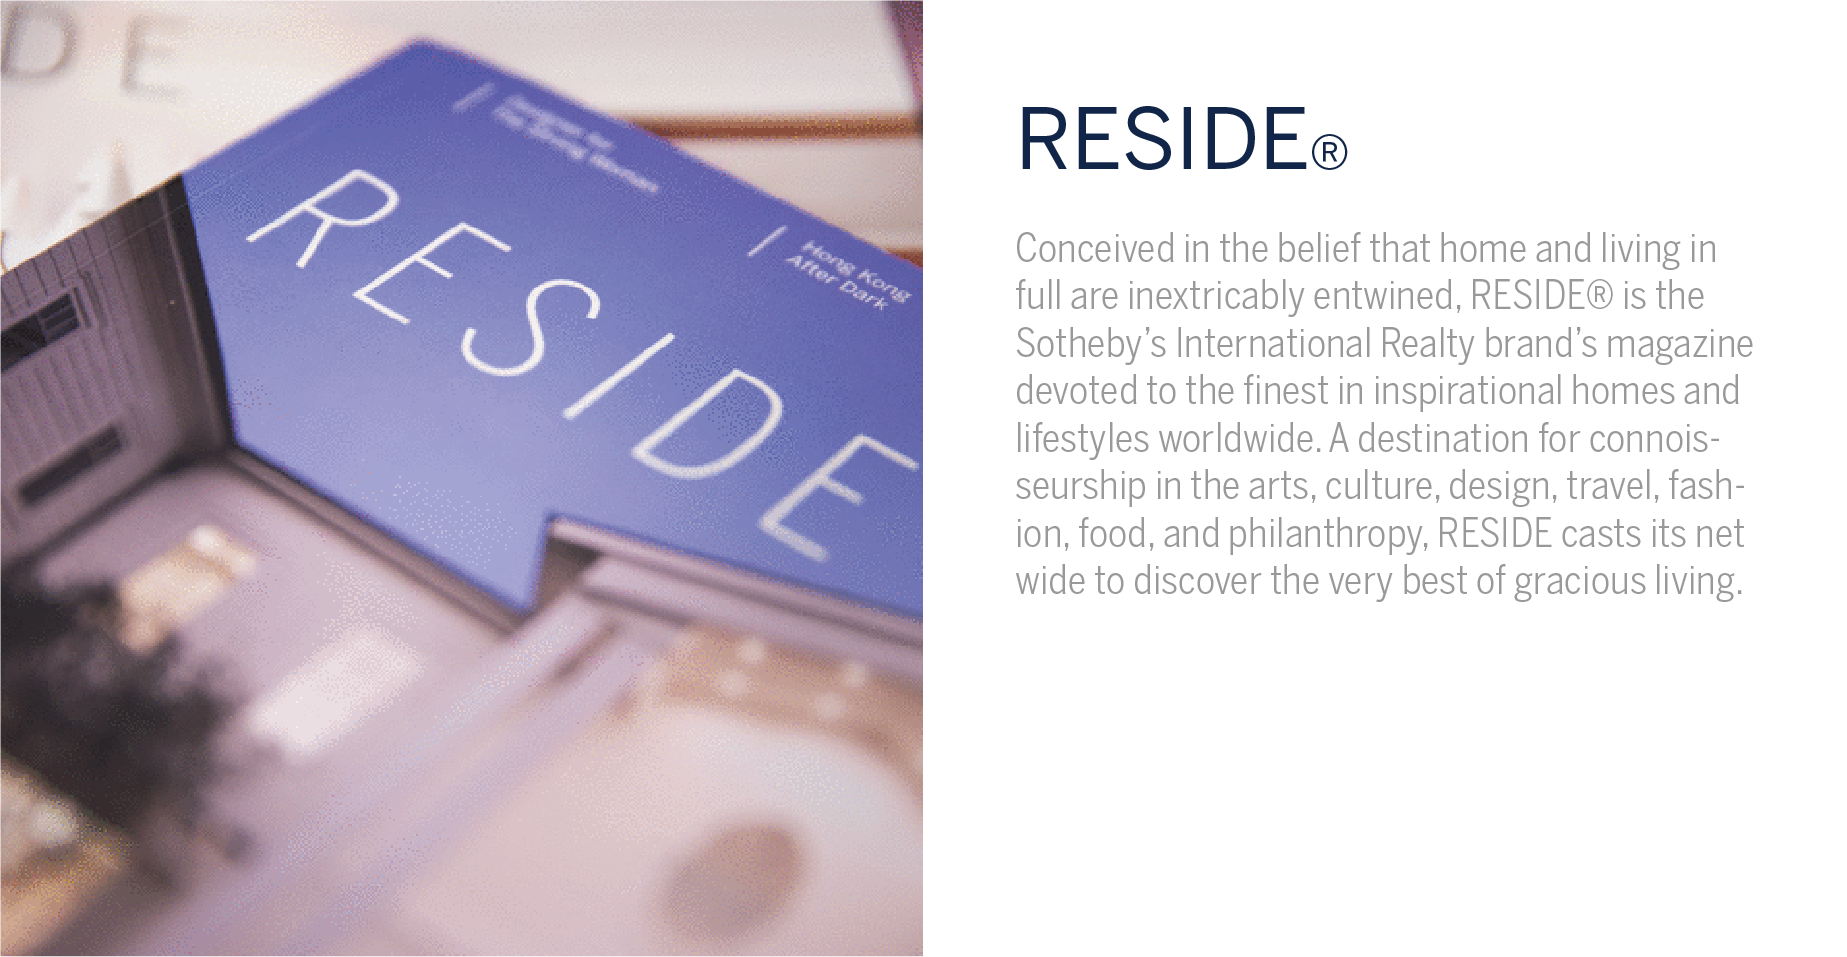 RESIDE Magazine - Conceived in the belief that home and living in full are inextricably entwined, RESIDE® is the Sotheby's International Realty brand's magazine devoted to the finest in inspirational homes and lifestyles worldwide. A destination for connoisseurship in the arts, culture, design, travel, fashion, food, and philanthropy, RESIDE casts its net wide to discover the very best of gracious living.